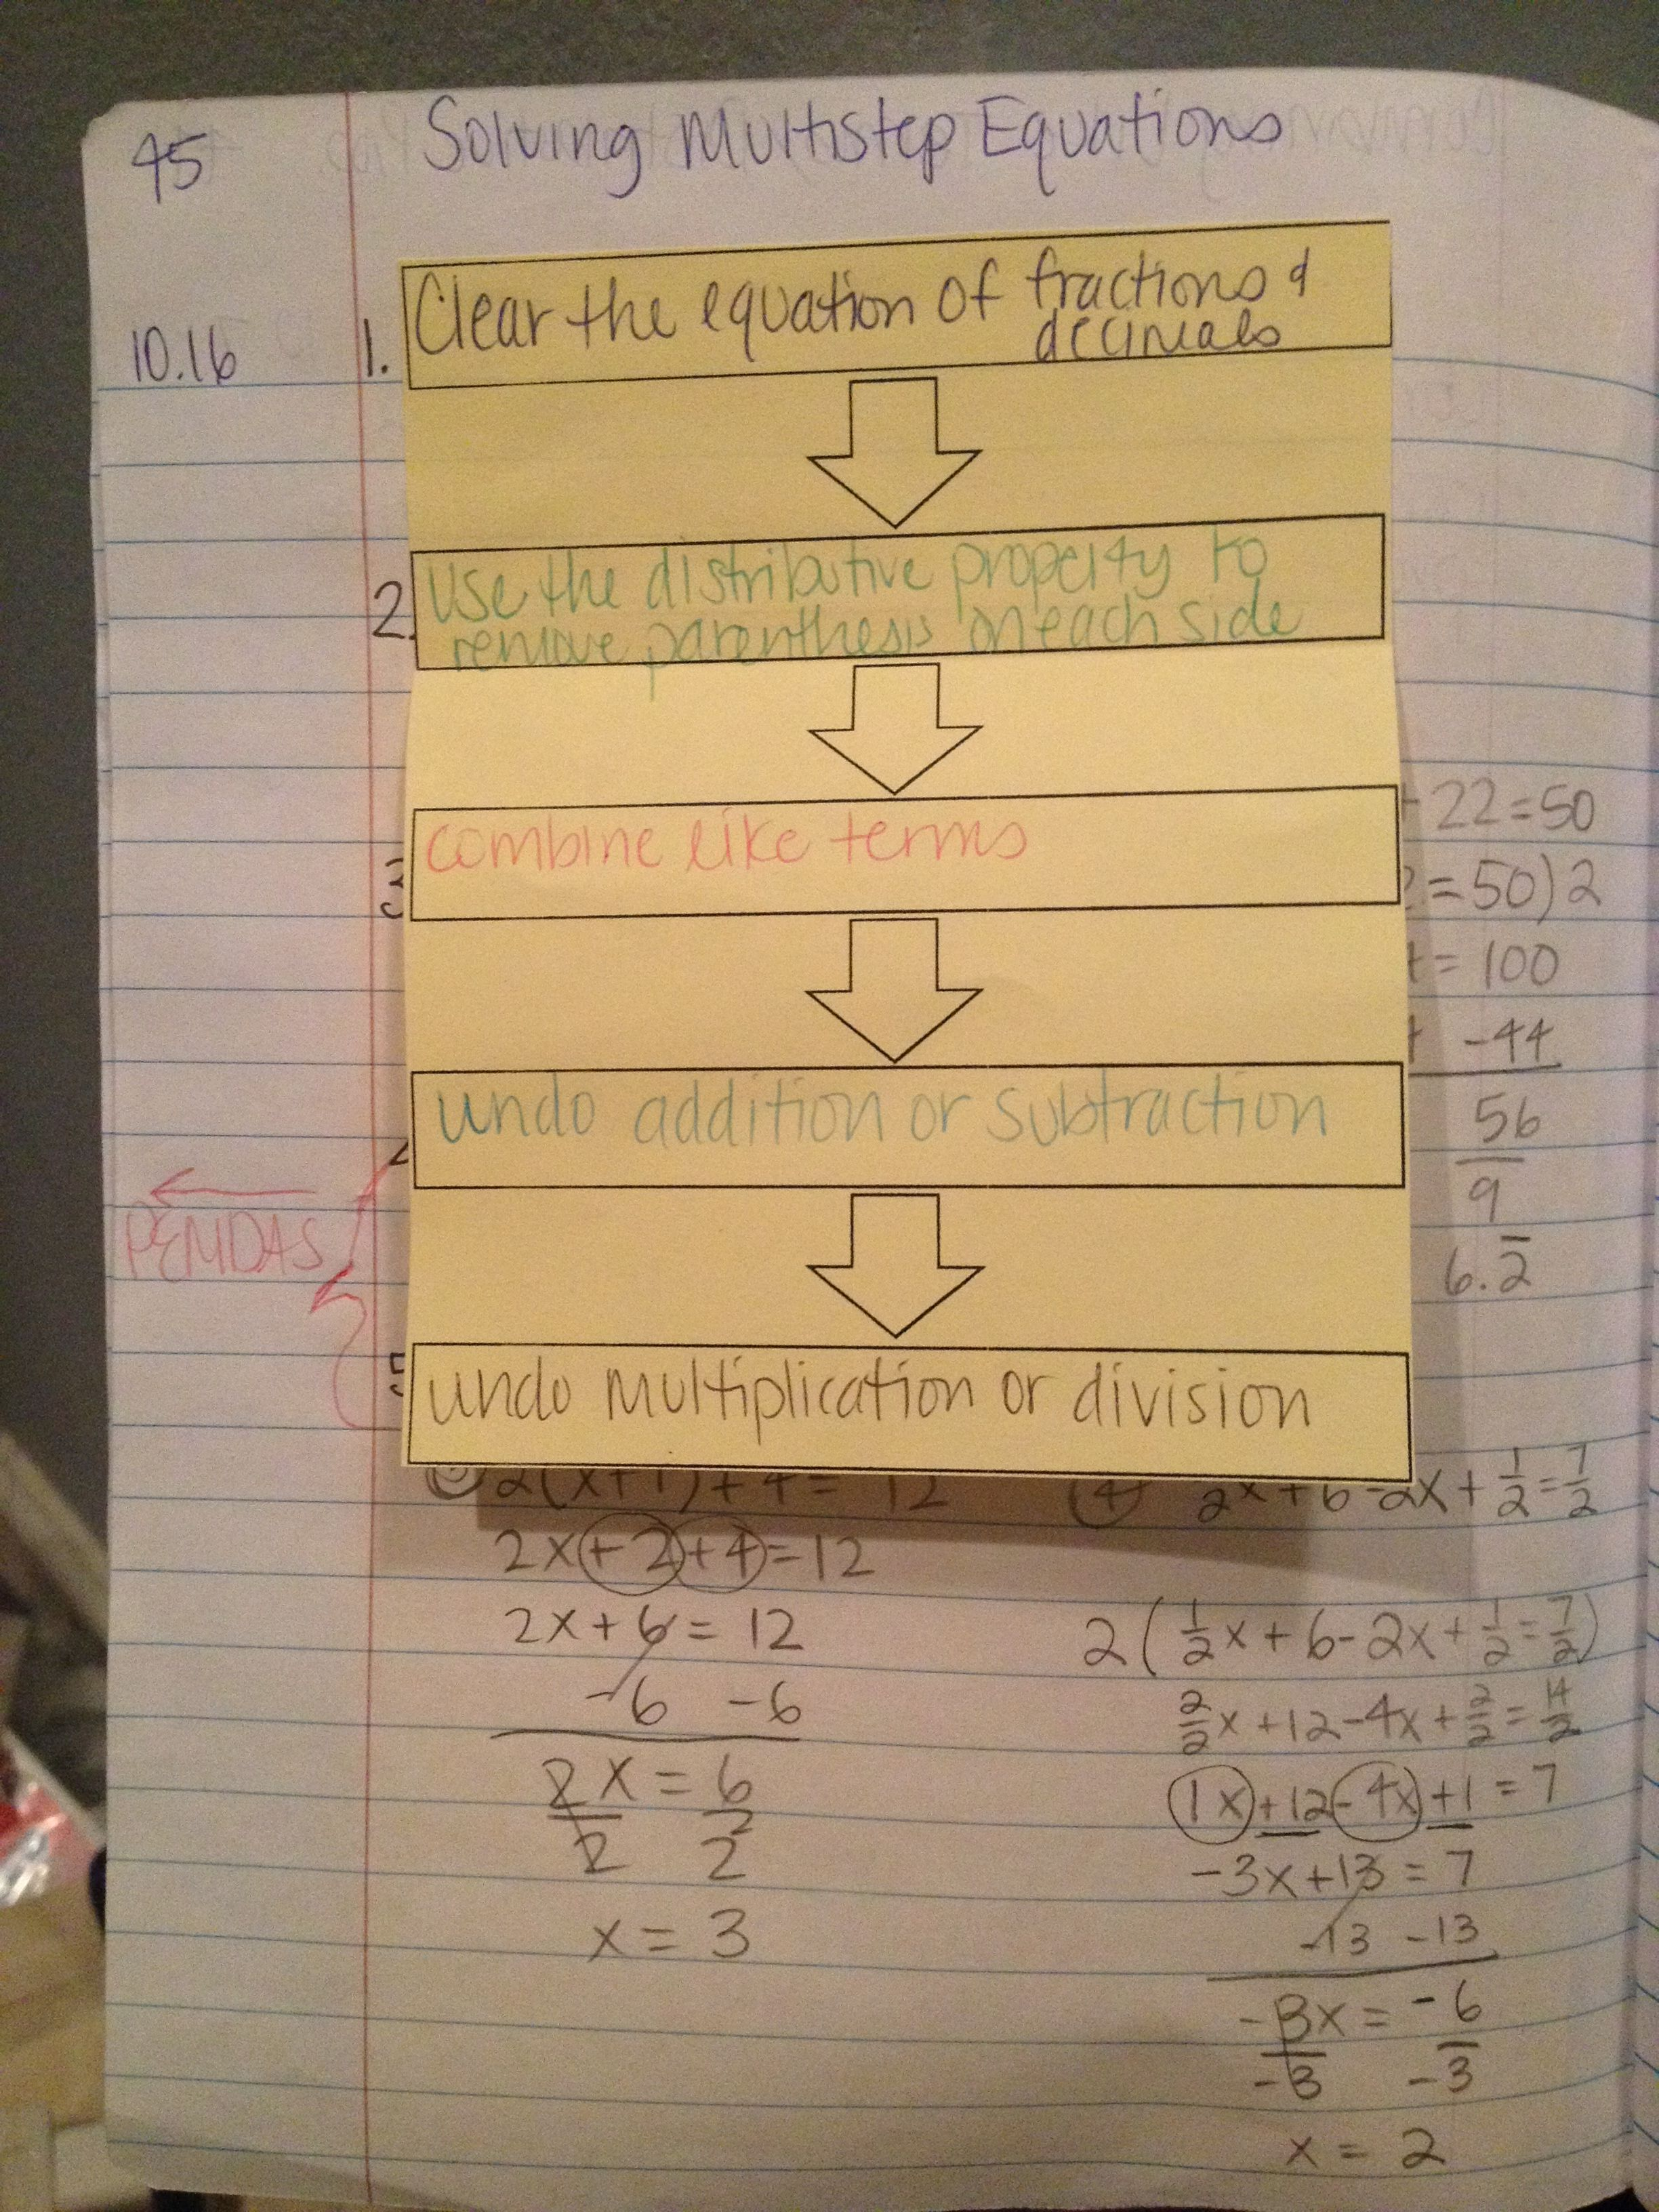 Flow chart for solving multistep equations. Students glued